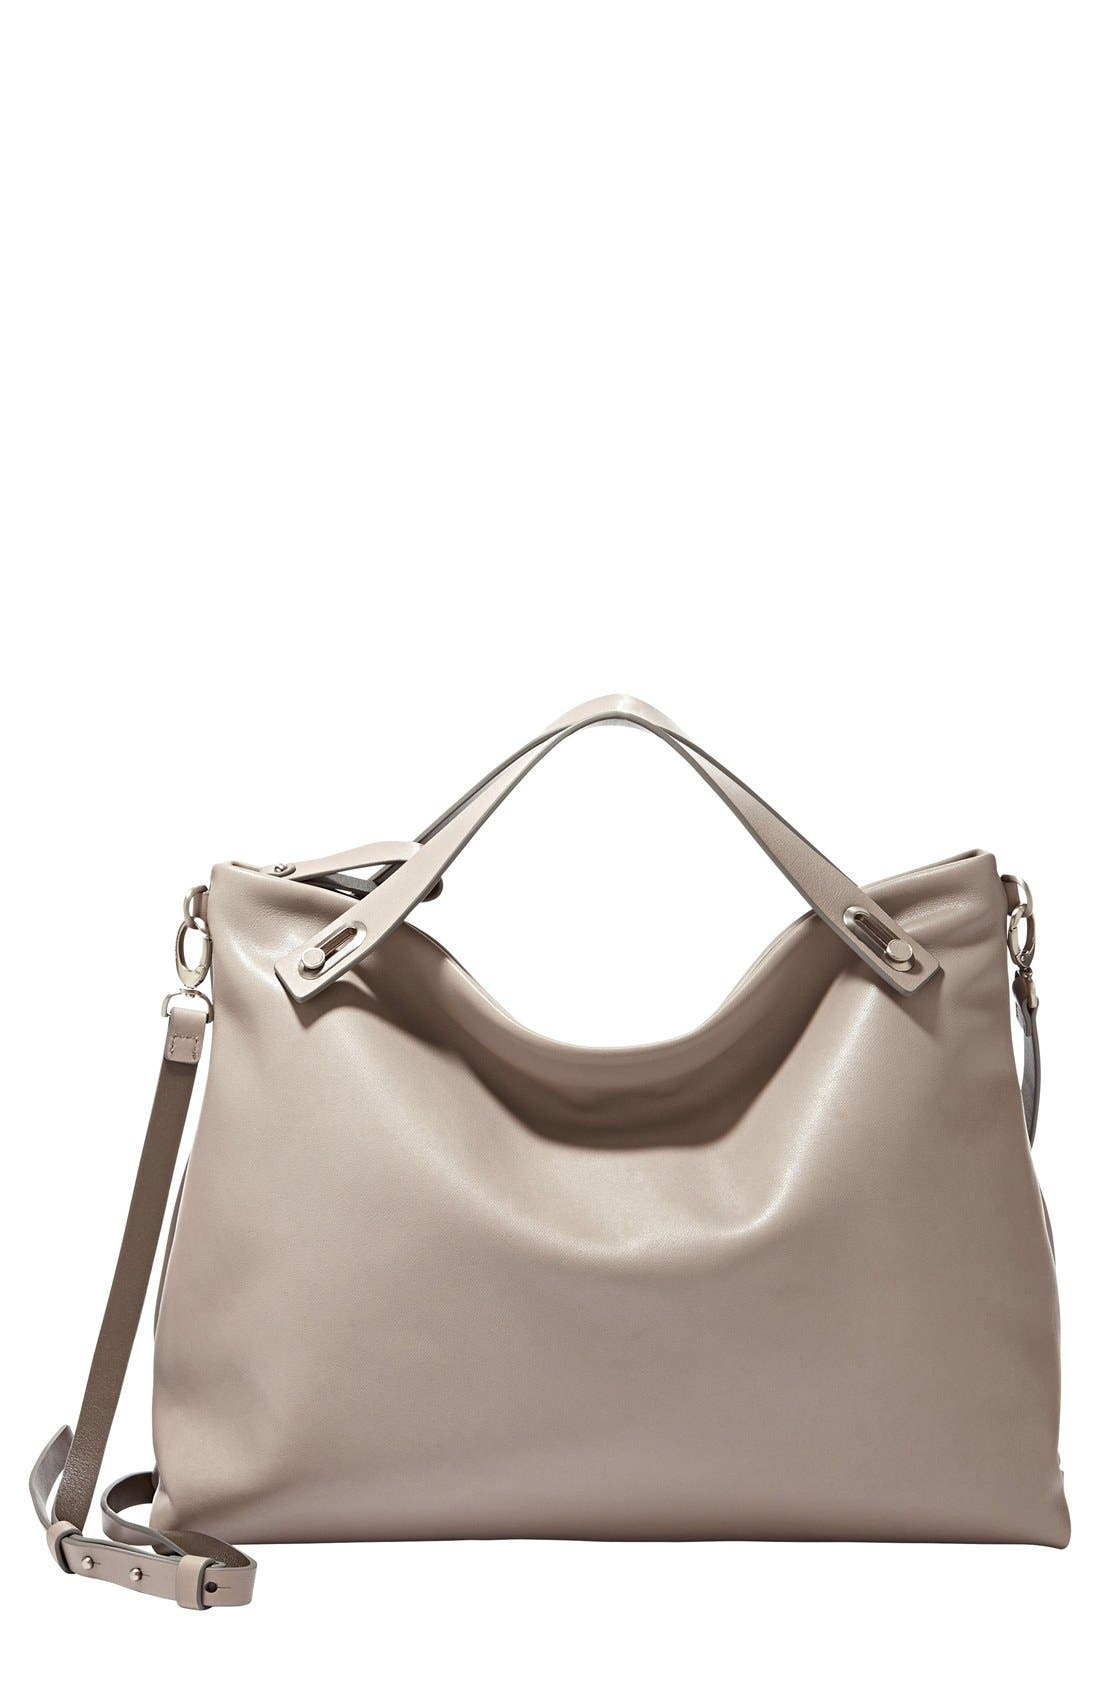 Alternate Image 1 Selected - Skagen 'Mikkeline' Leather Satchel